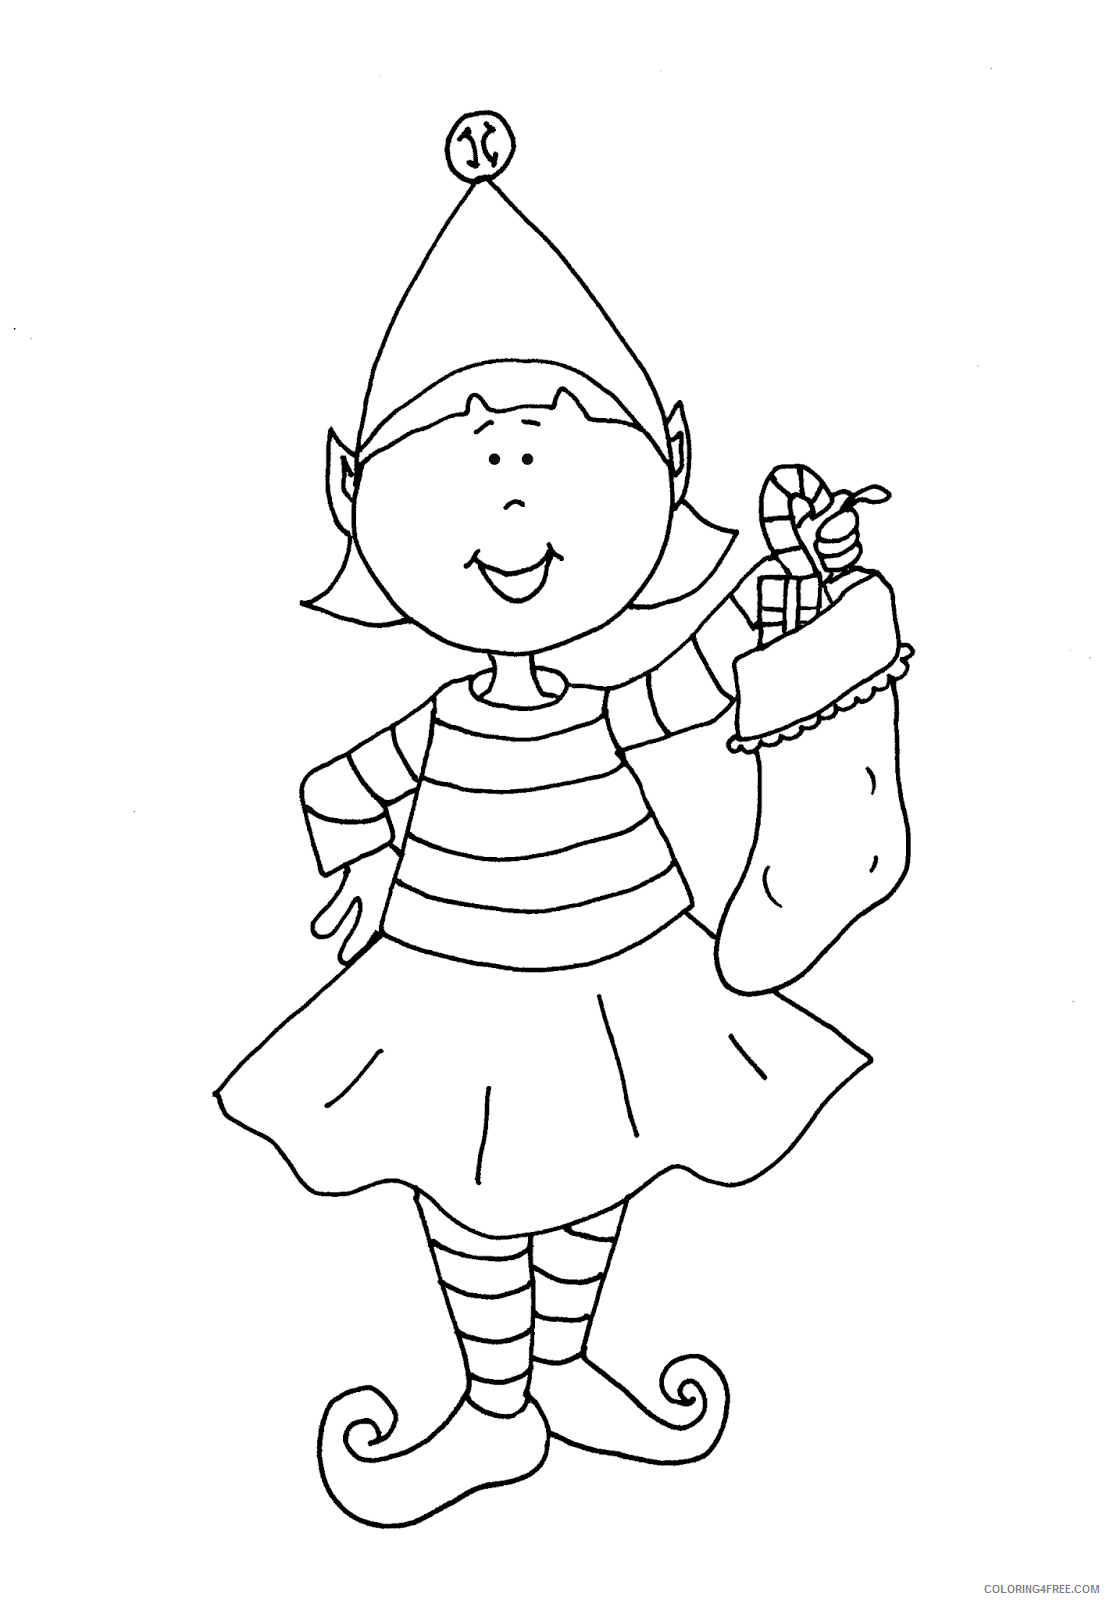 elf coloring pages with christmas stockings Coloring4free